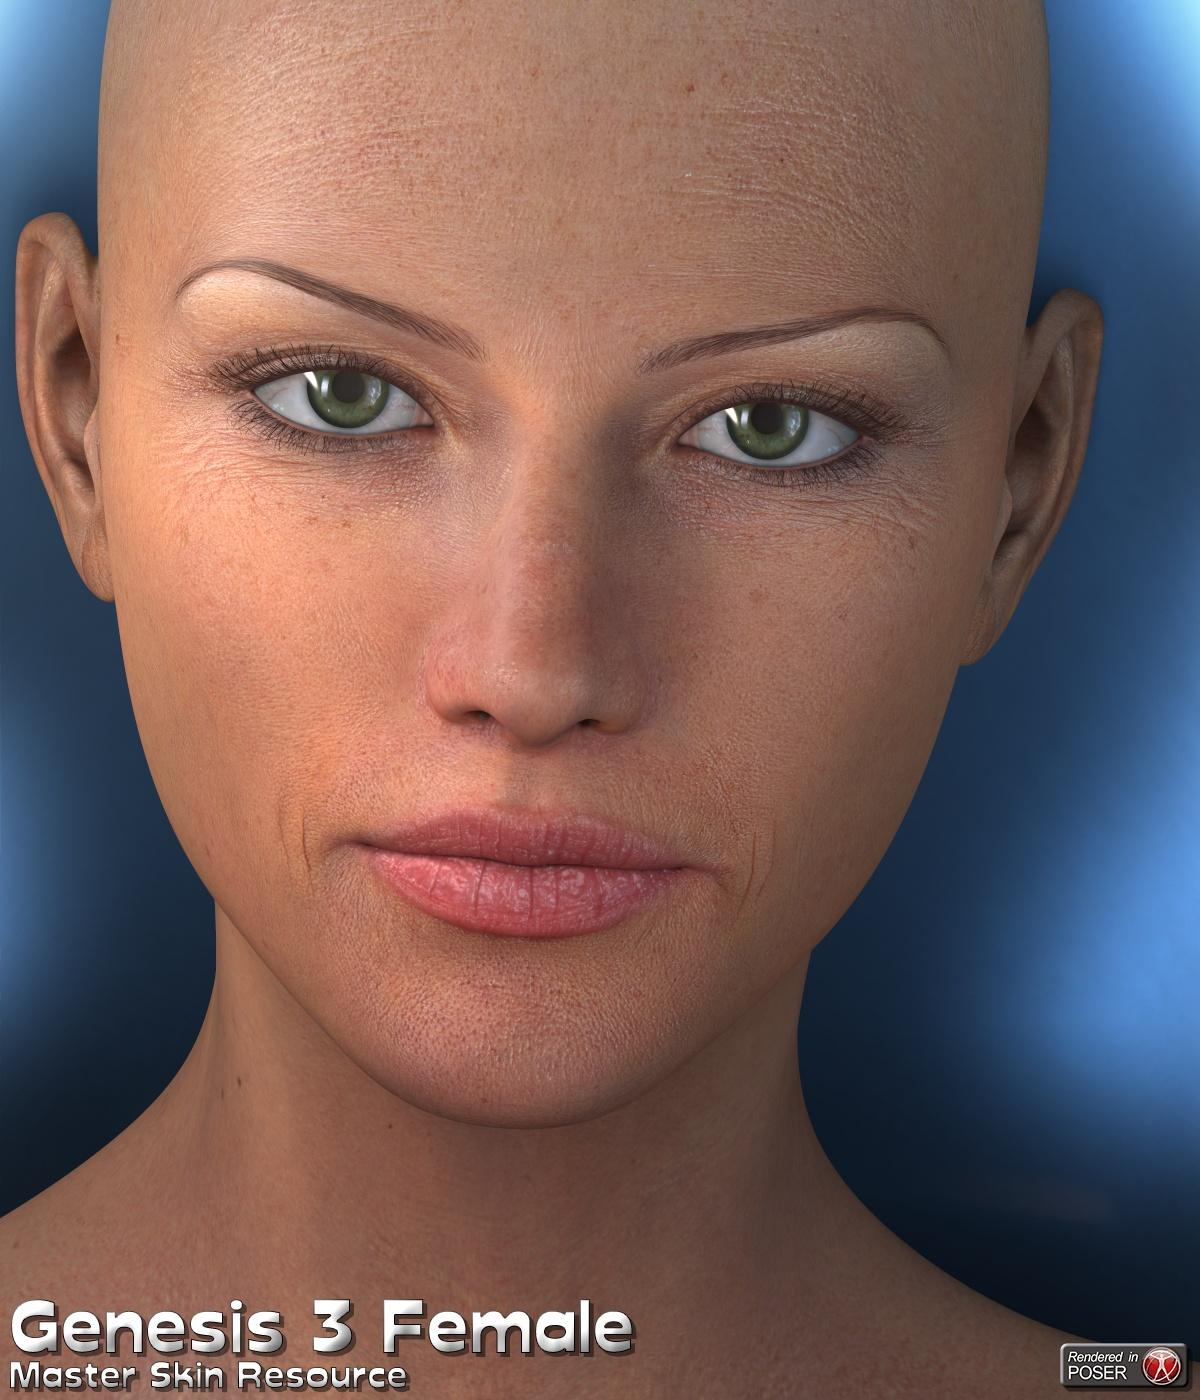 Master Skin Resource 11 - Genesis 3 Female + Genesis 8 Female